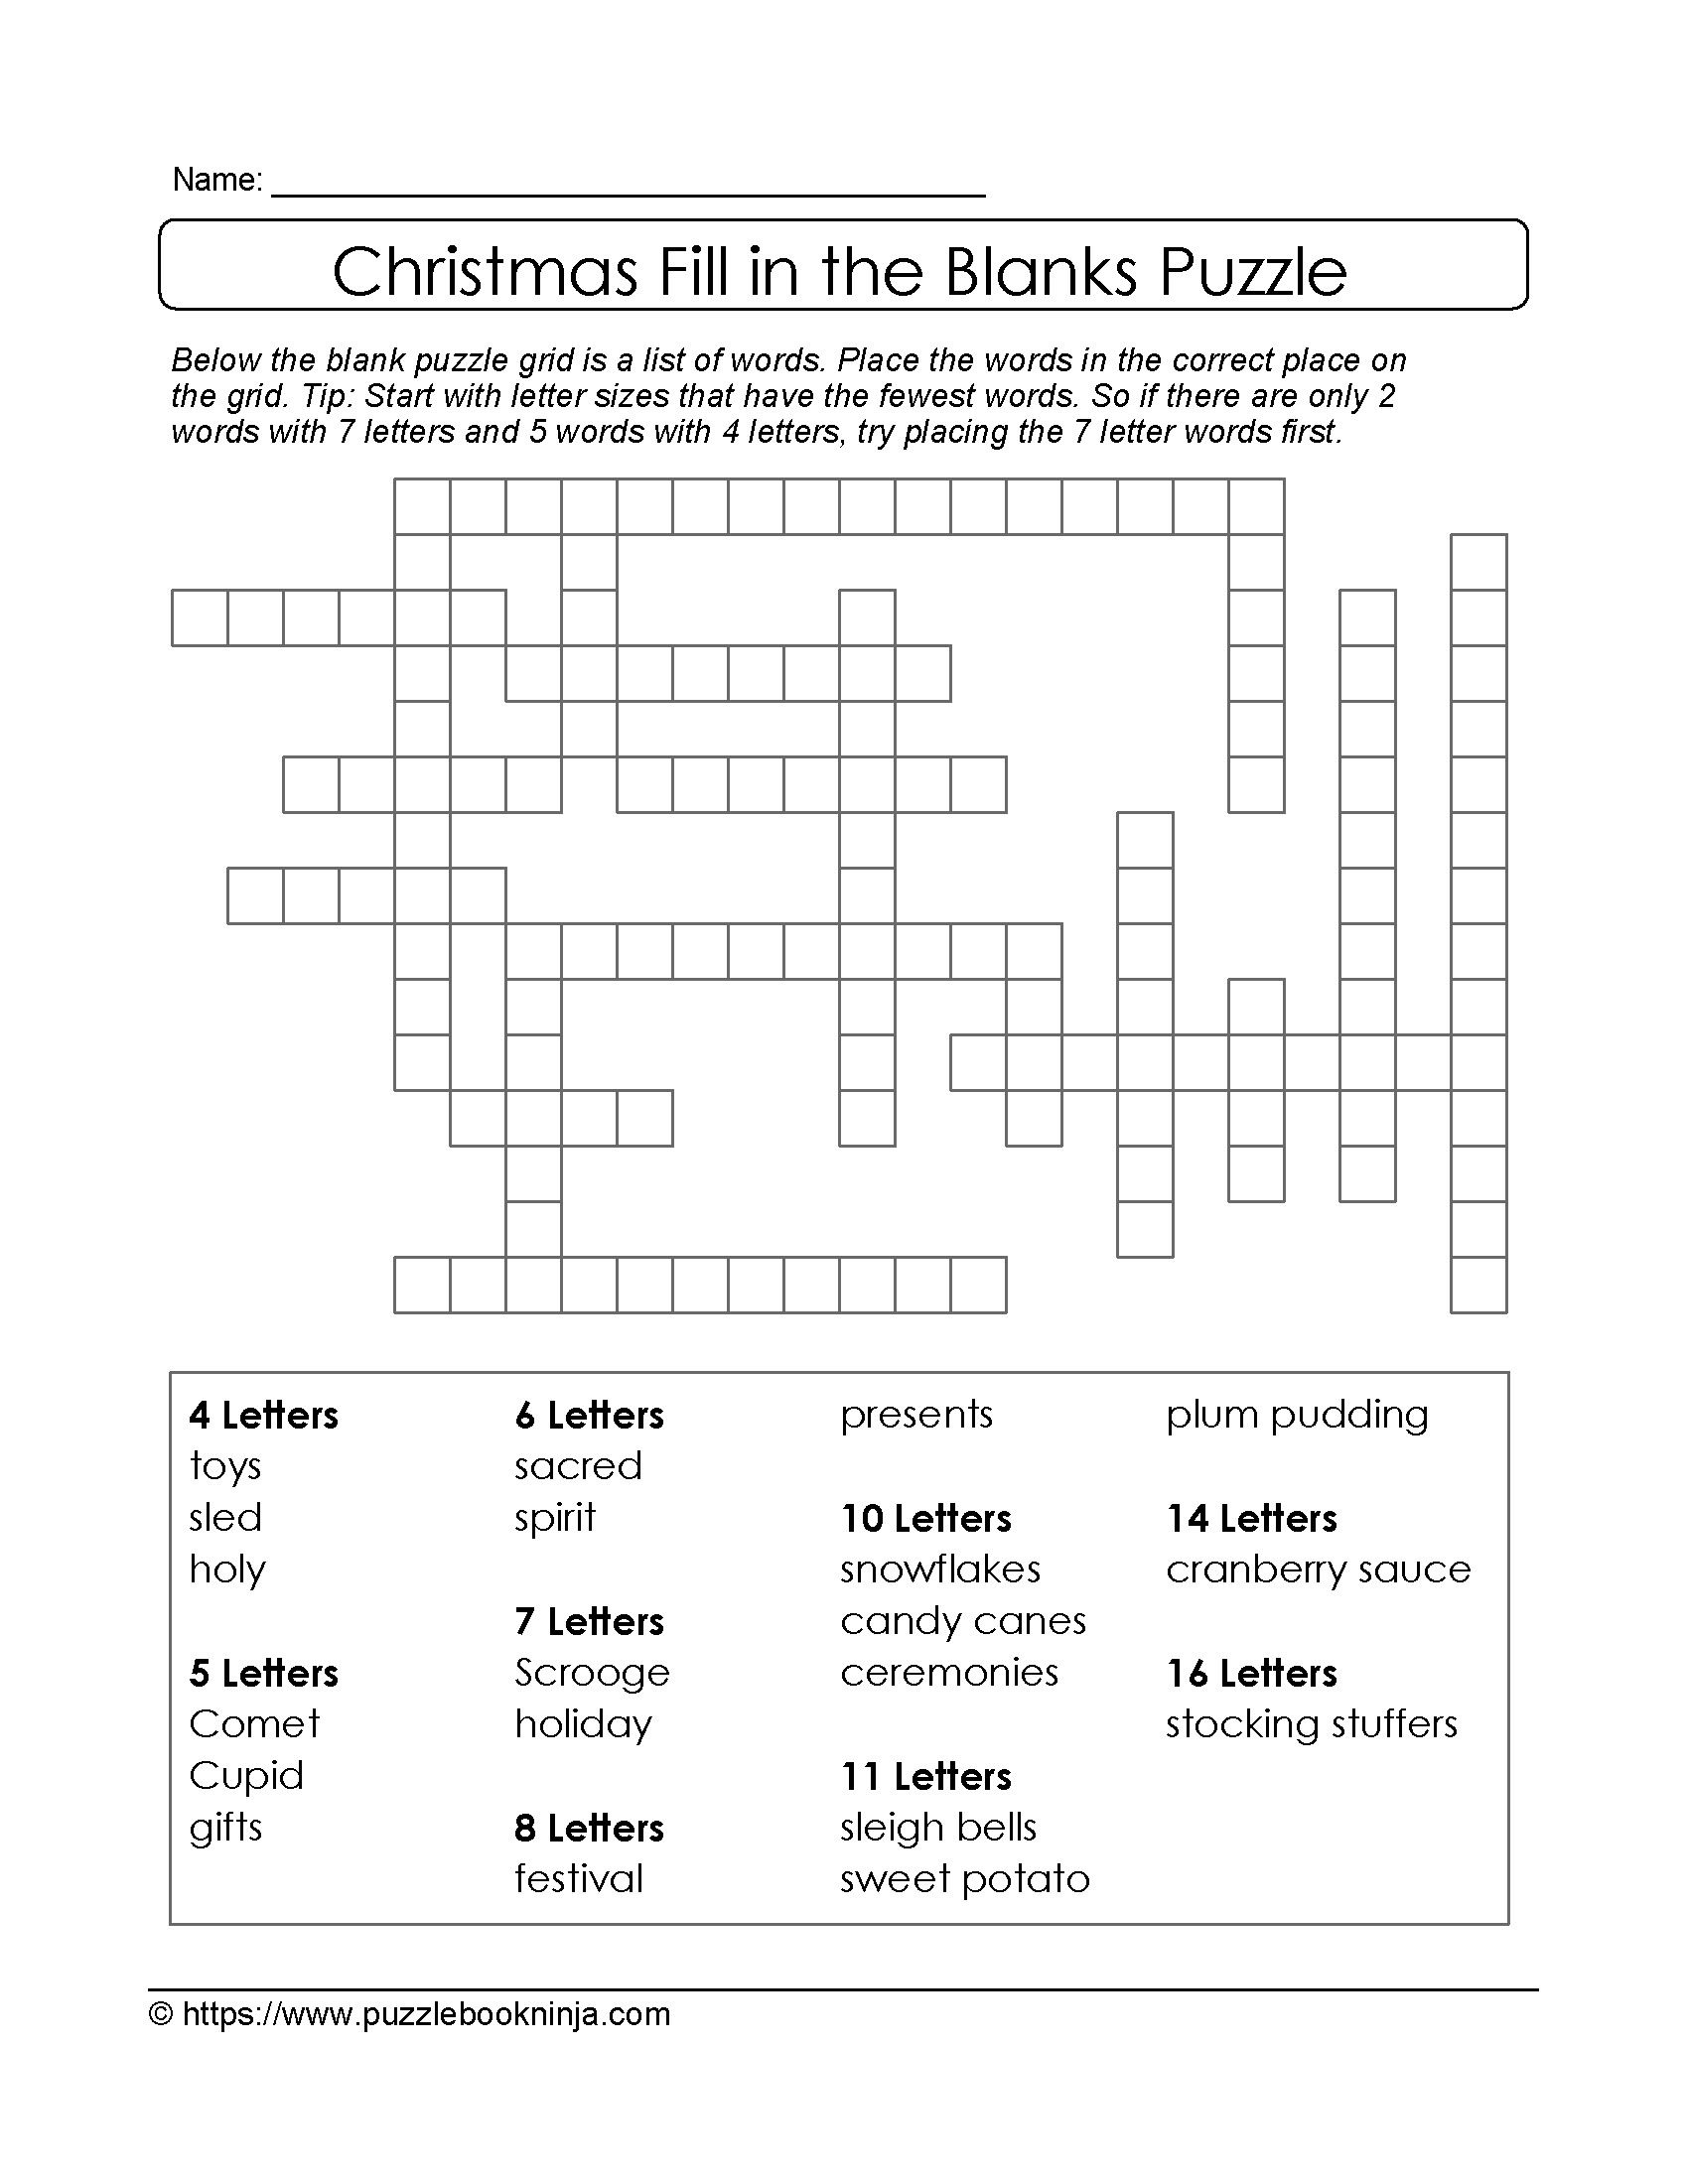 Puzzles To Print. Free Xmas Theme Fill In The Blanks Puzzle - Free Printable Fill In Puzzles